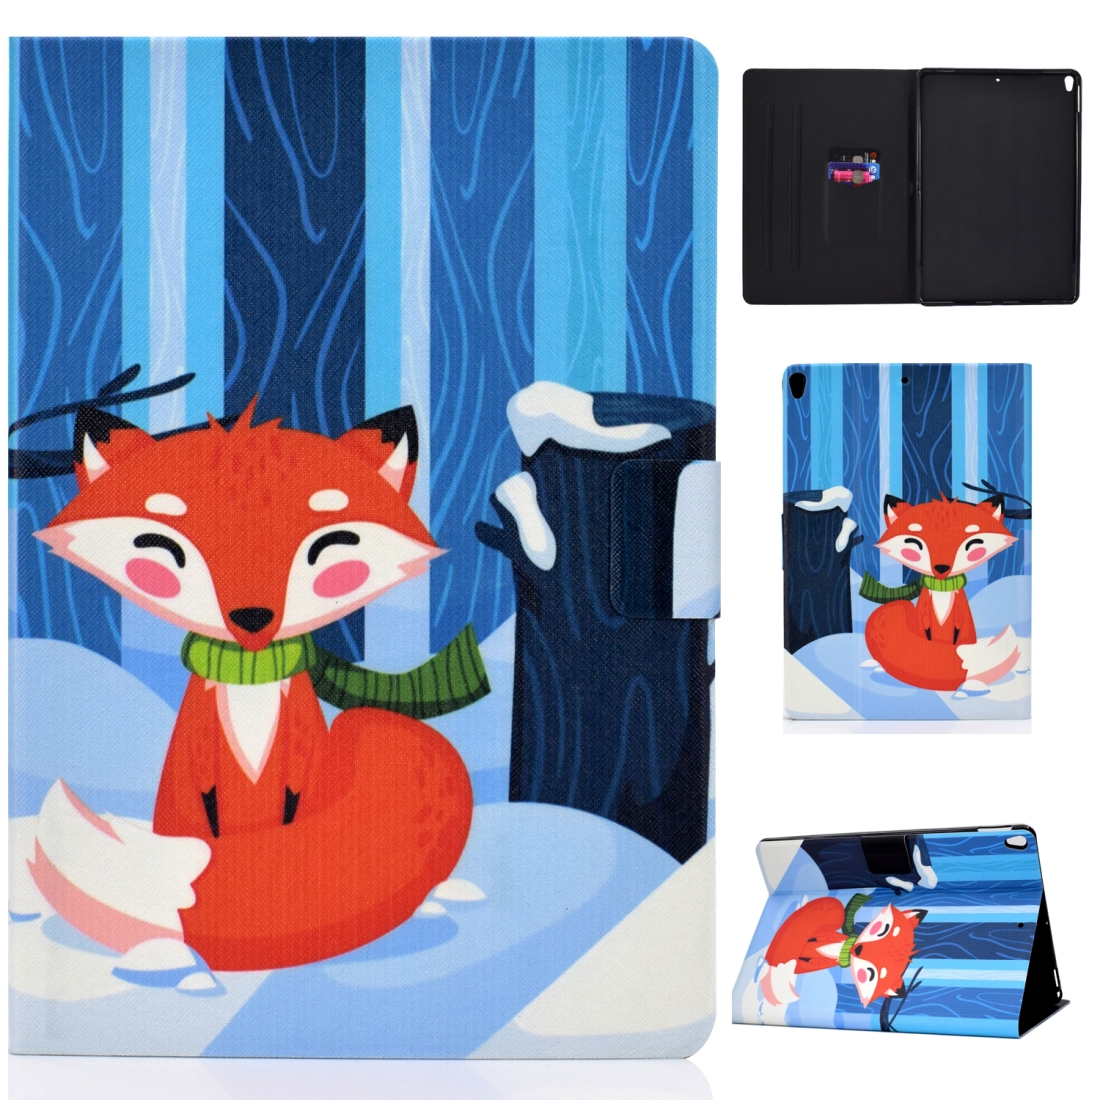 Artsy Protective iPad Air 3 Case (10.5 Inch), iPad Air (2019), Auto Sleep, Non-slip (Red Fox)